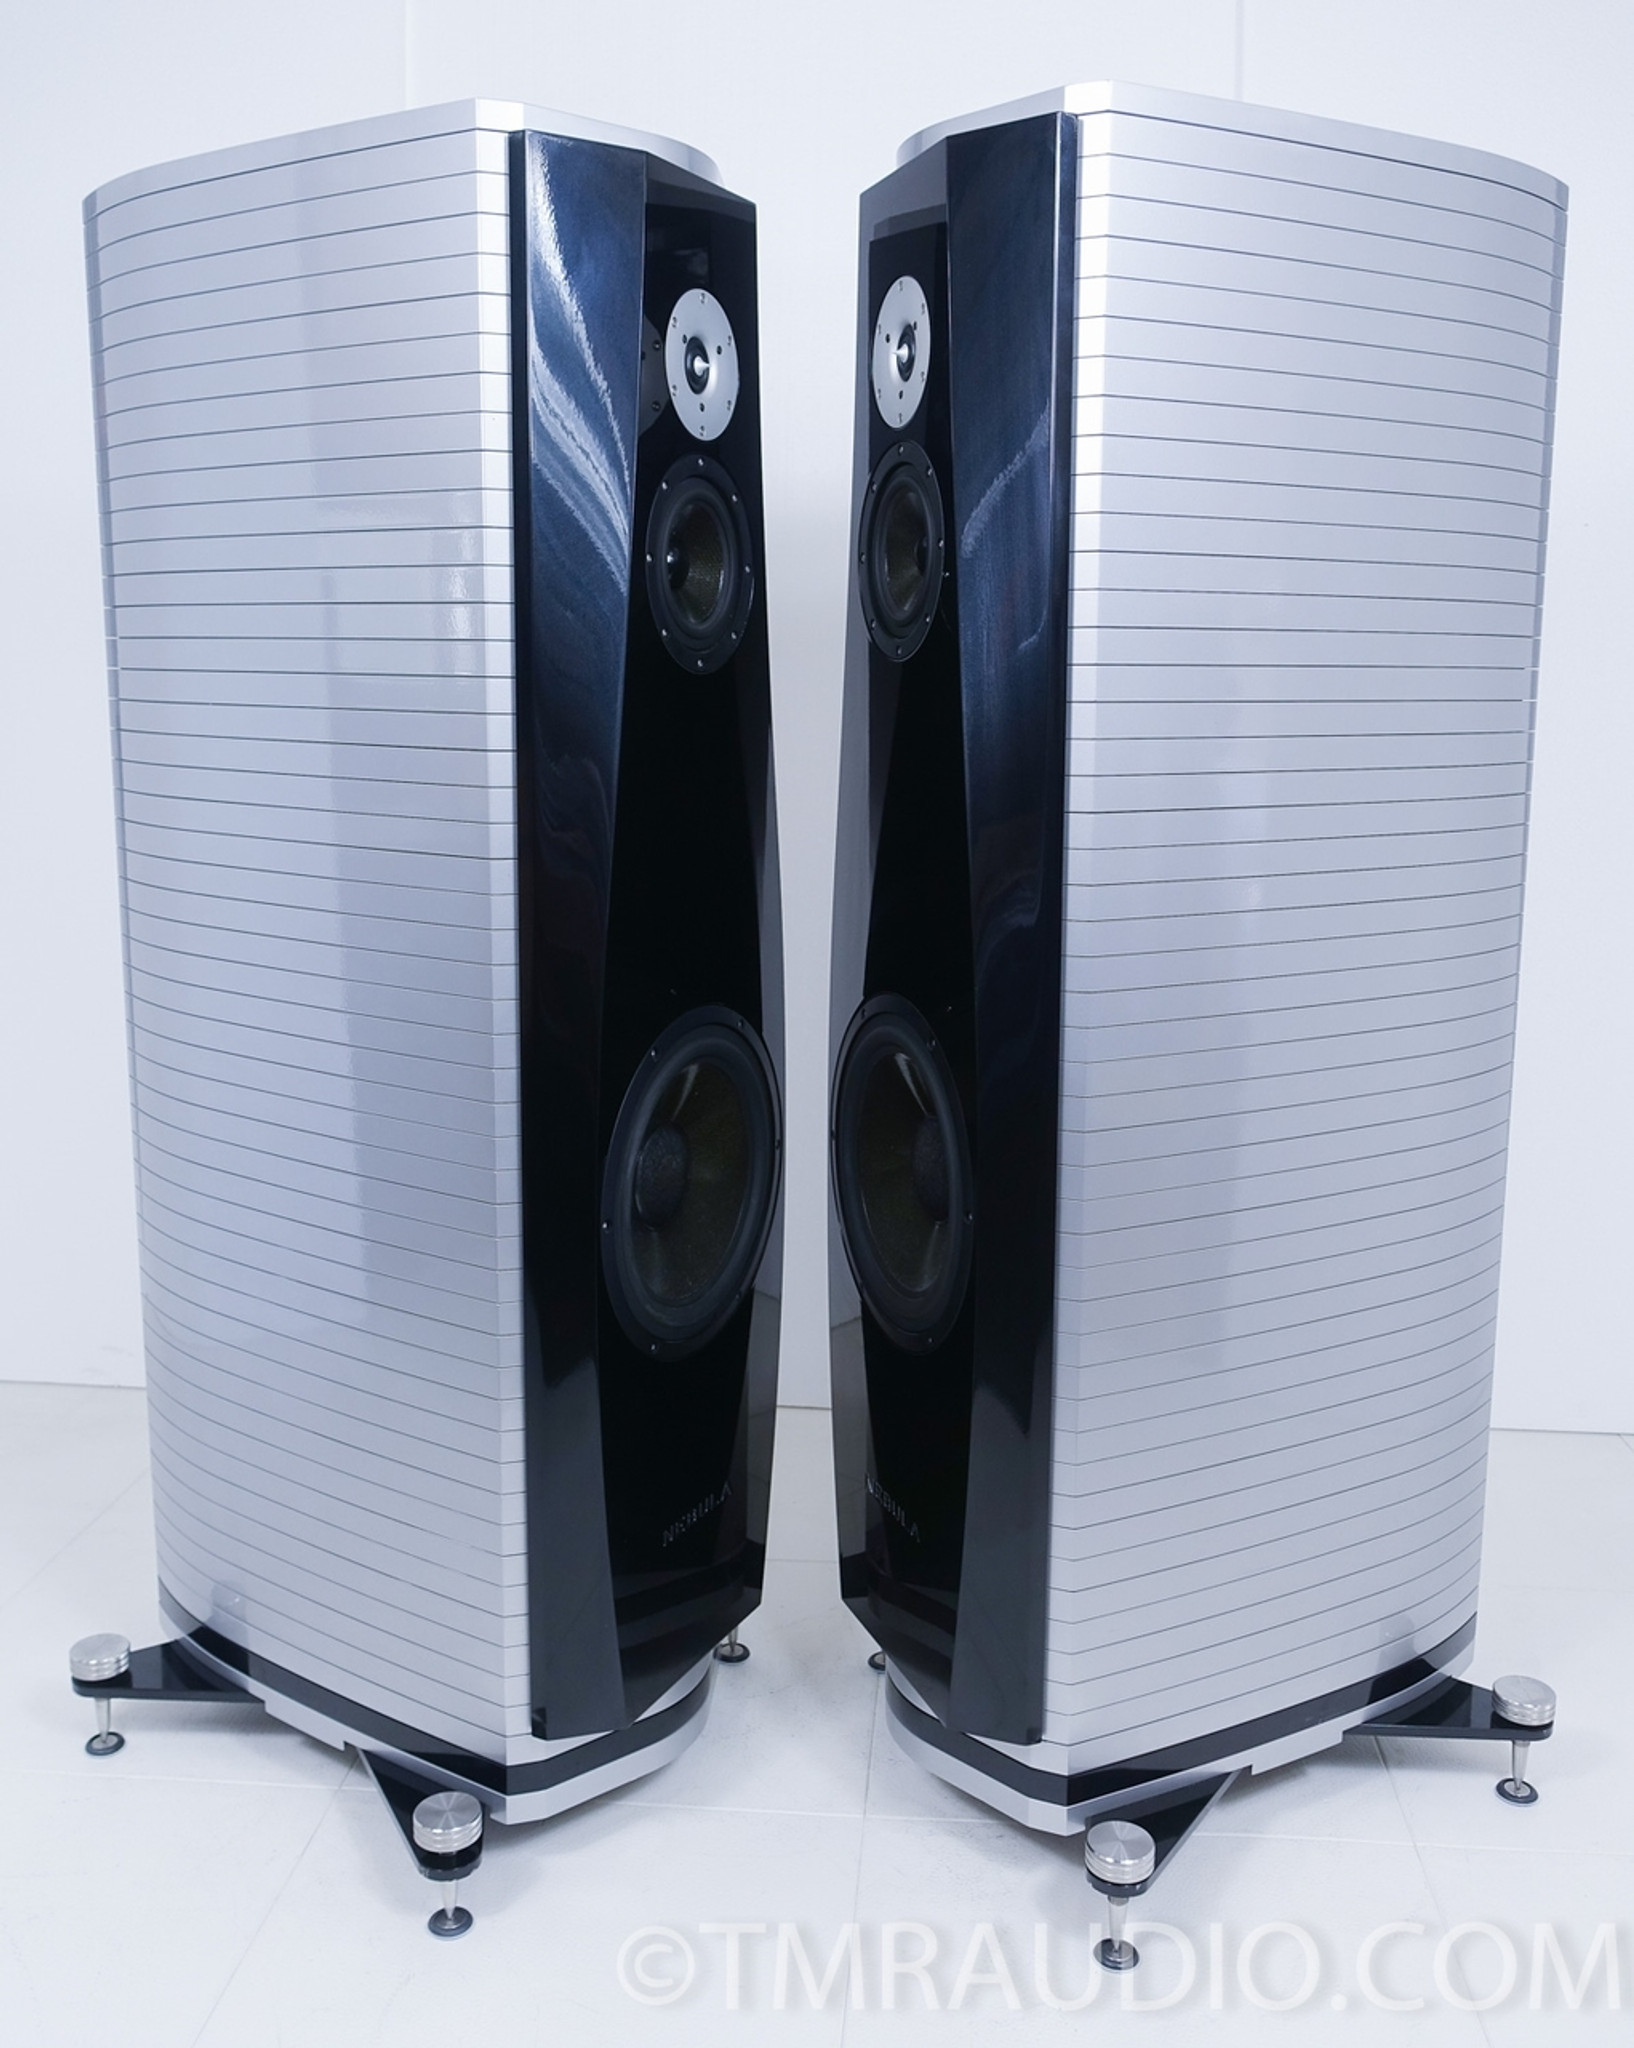 Eventus Audio Nebula Floorstanding Speakers Beautiful